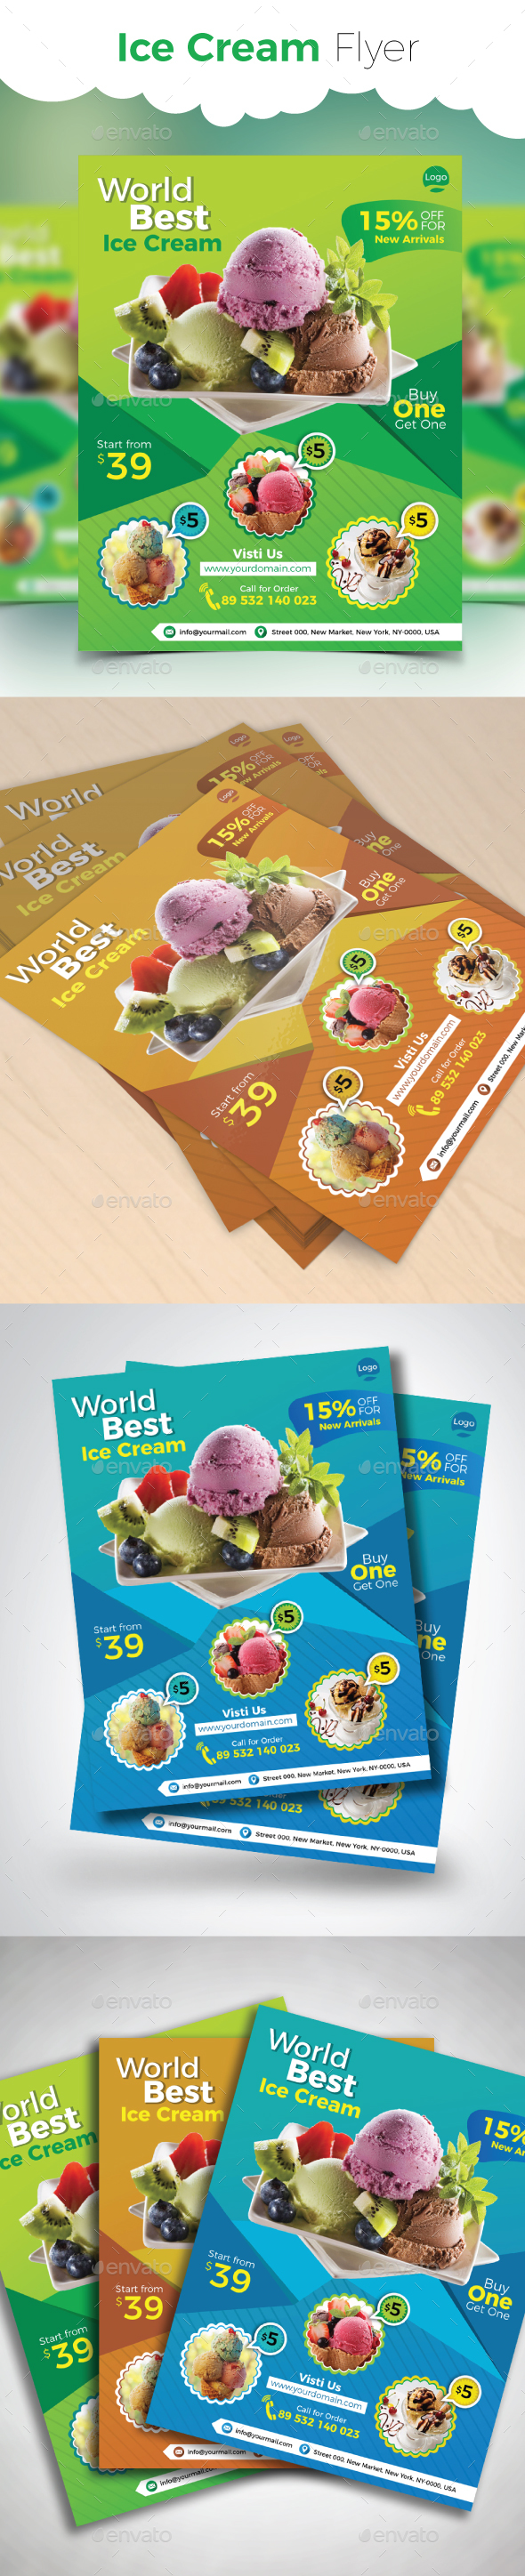 Ice Cream Flyer - Commerce Flyers